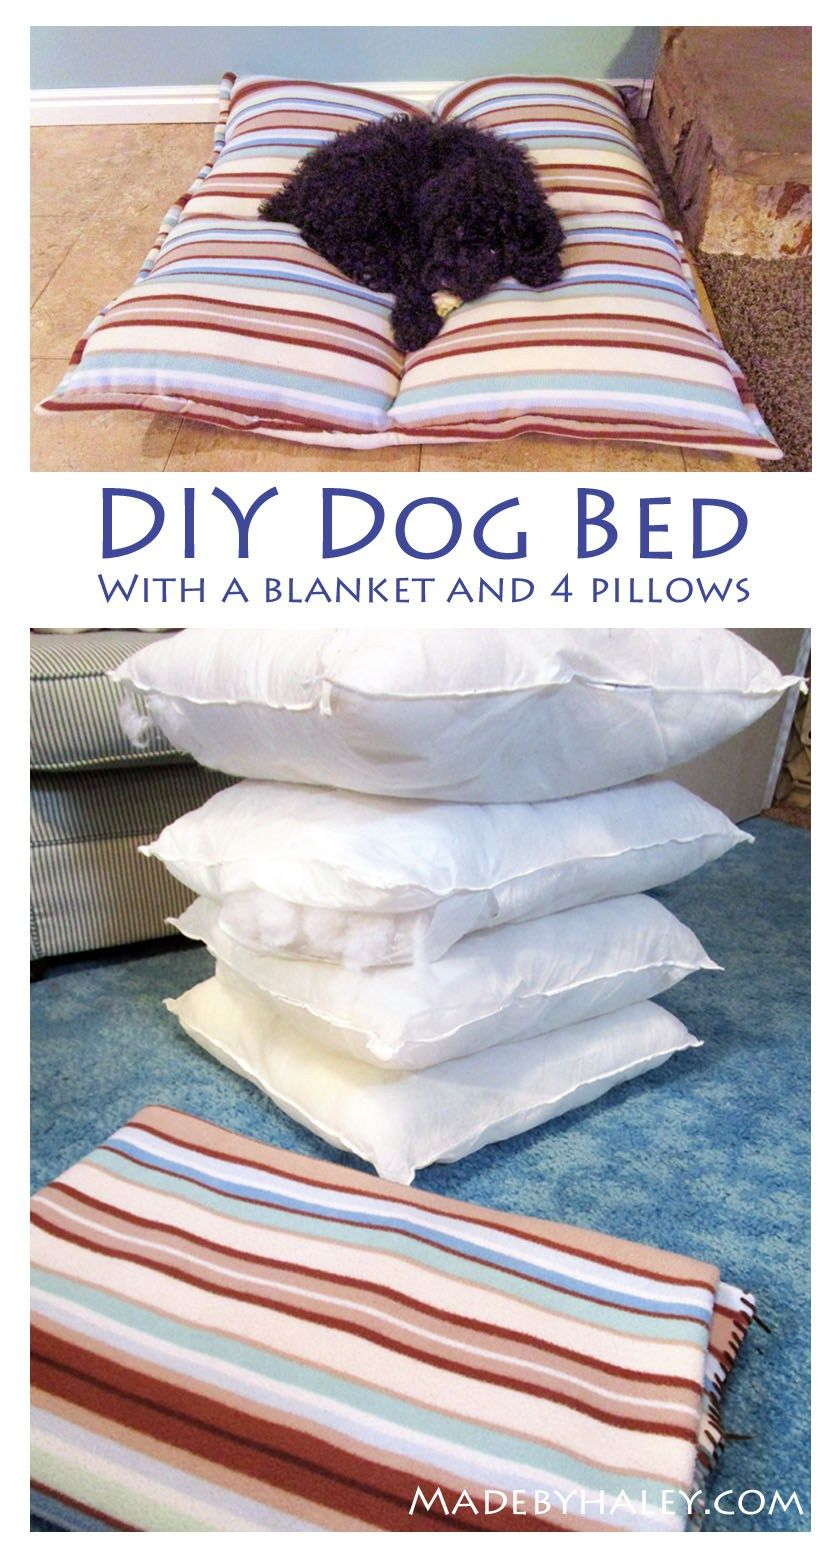 Diy Dog Bed Diy Dog Bed With Things You Already Have Made By Haley Blog